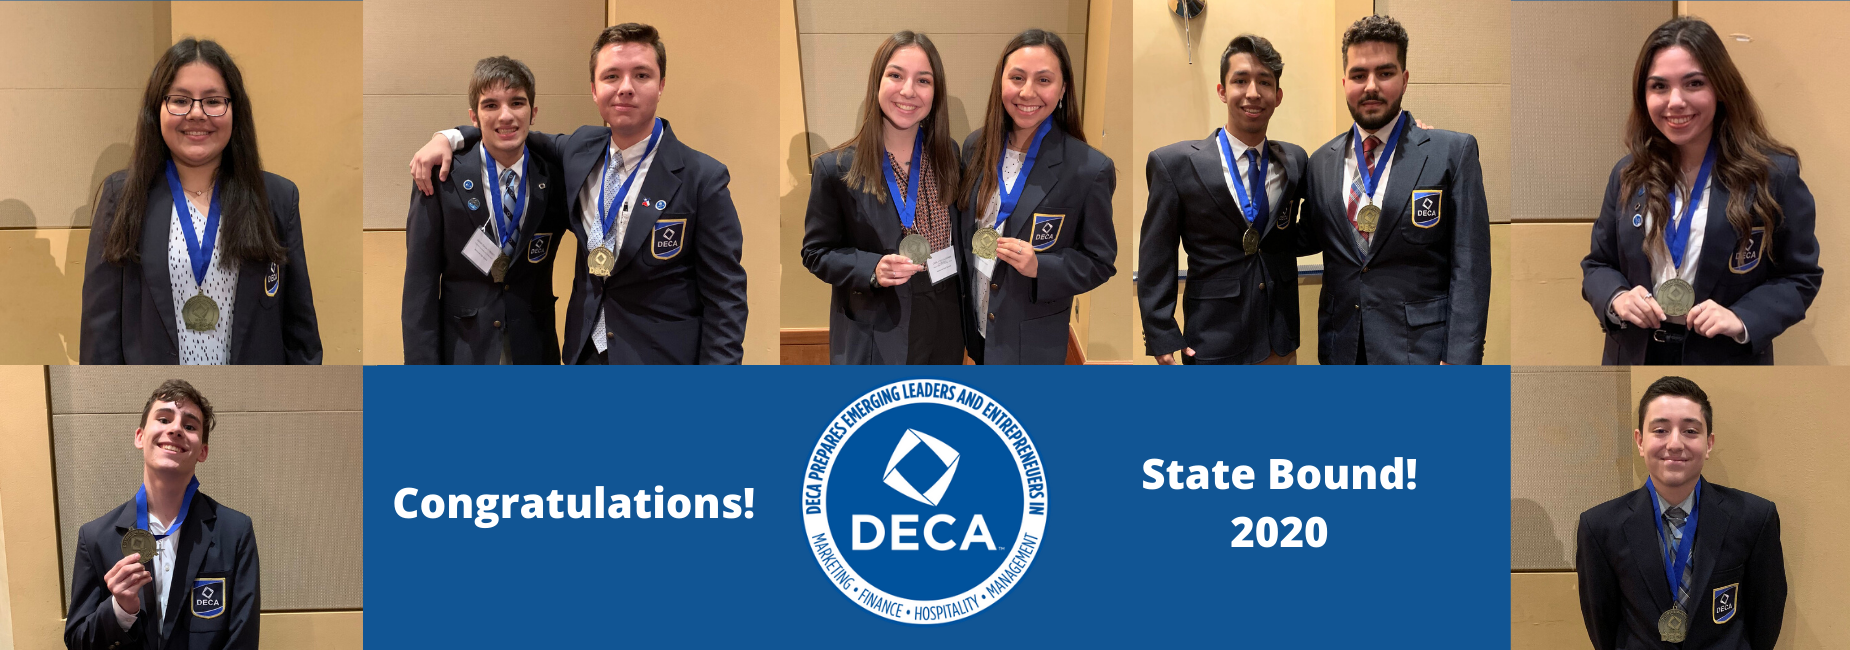 DECA students with medals